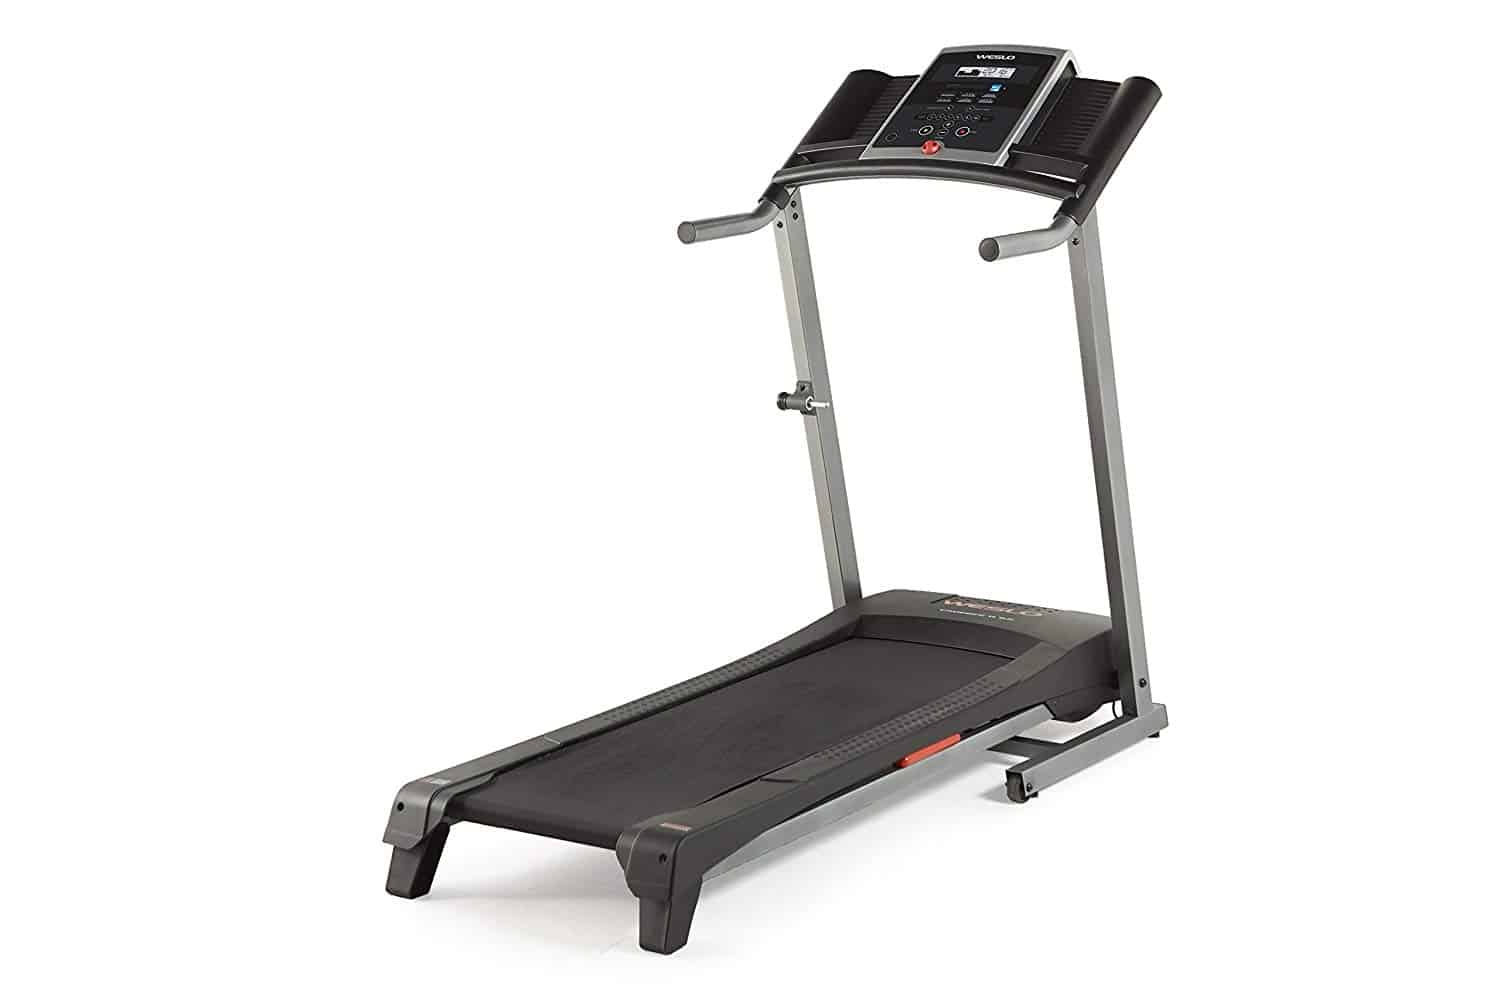 The Weslo Cadence R 5 2 Treadmill Review and Guide